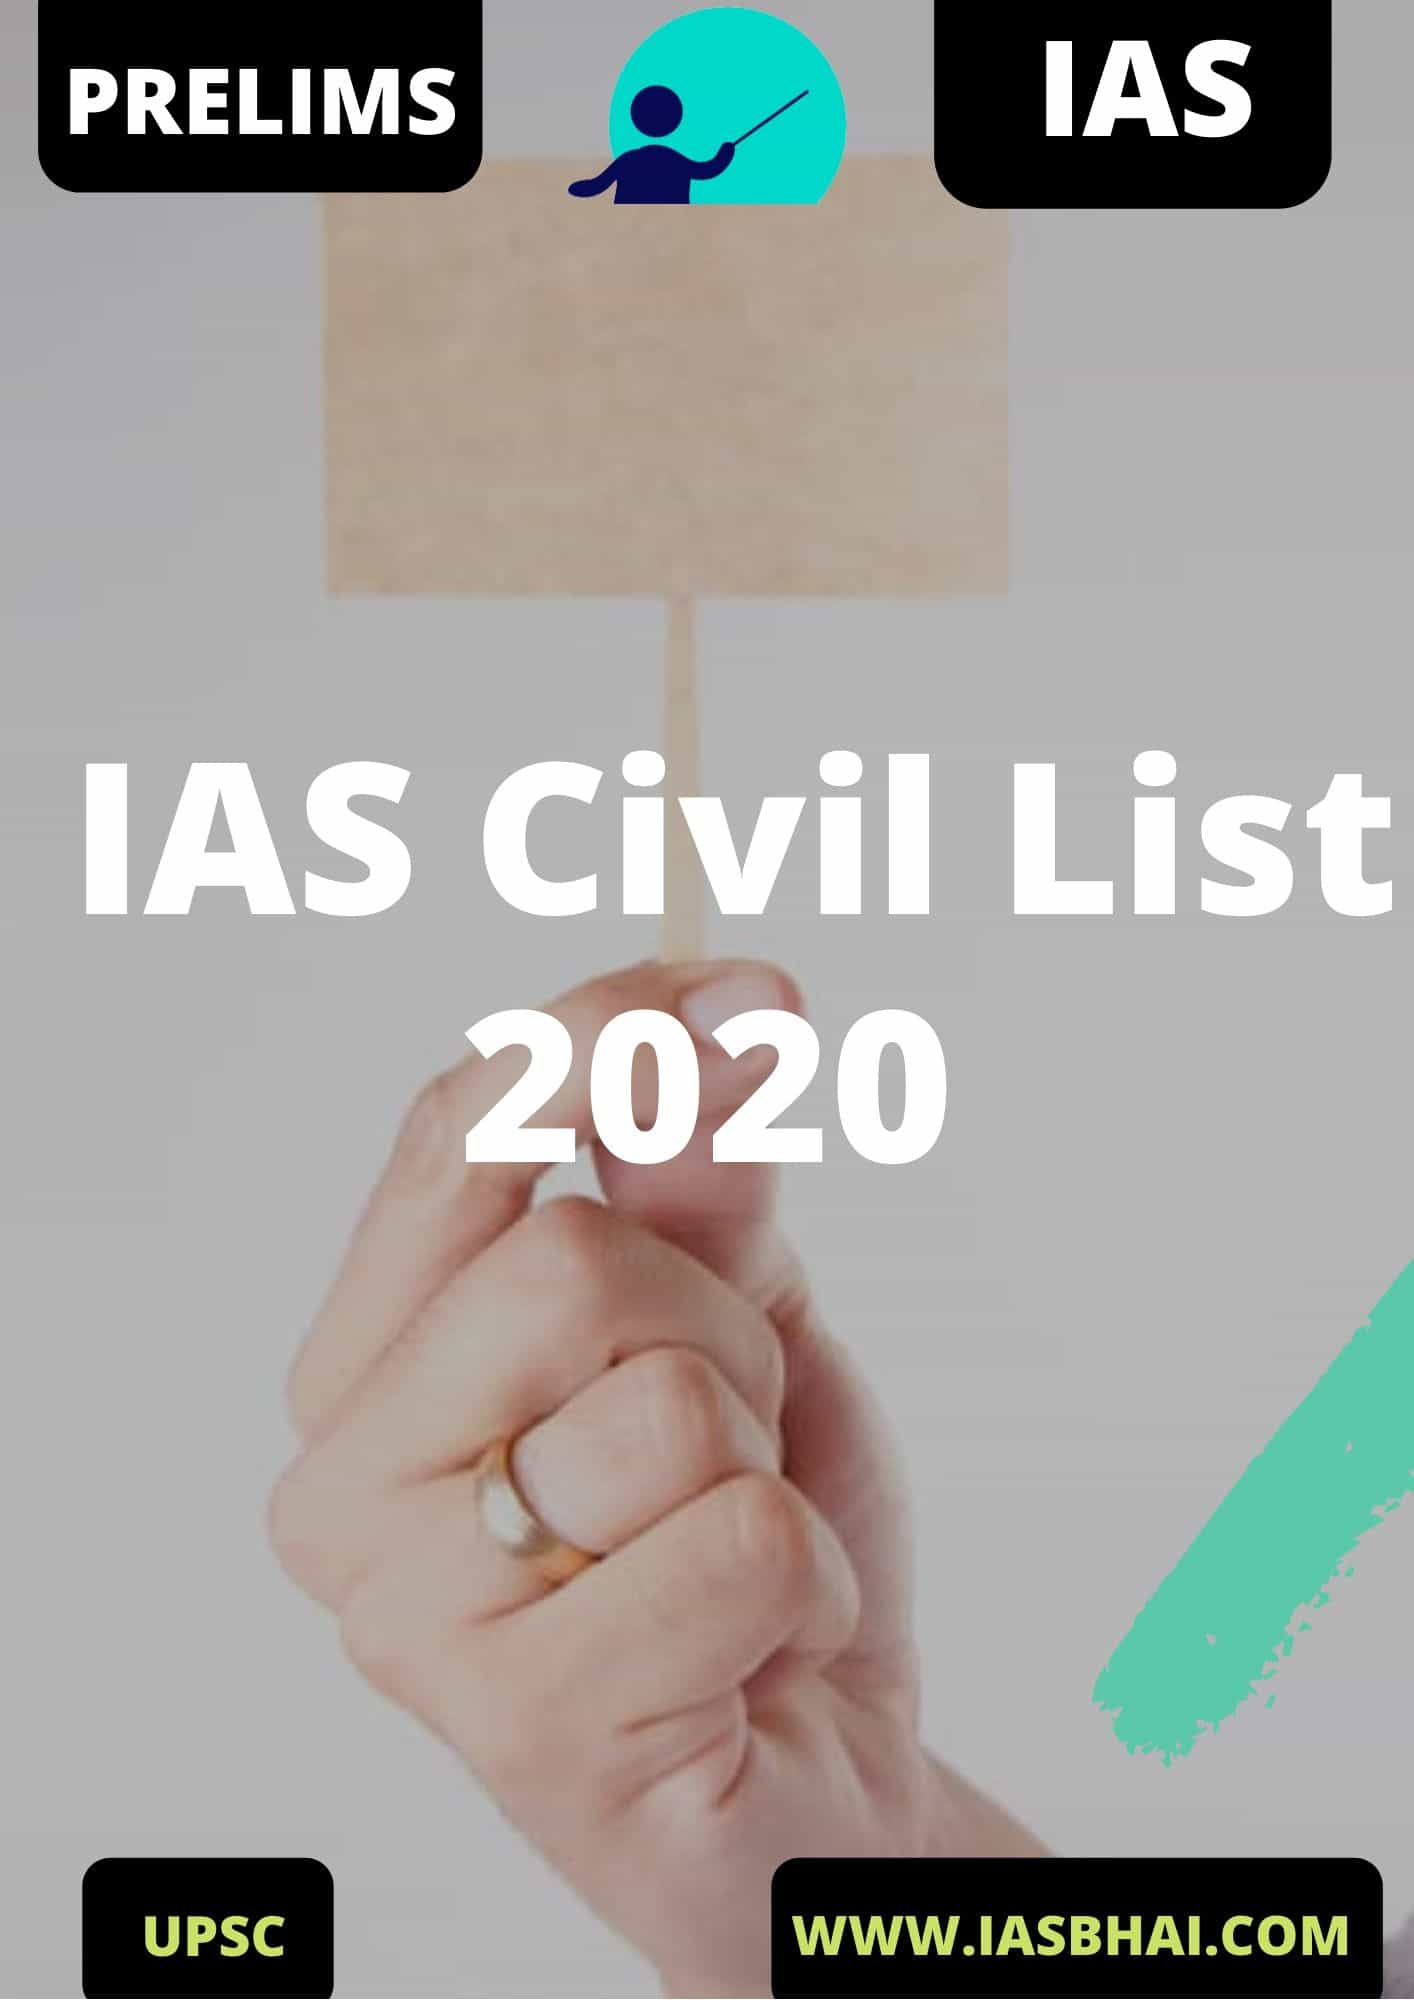 IAS Civil List 2020 UPSC IAS